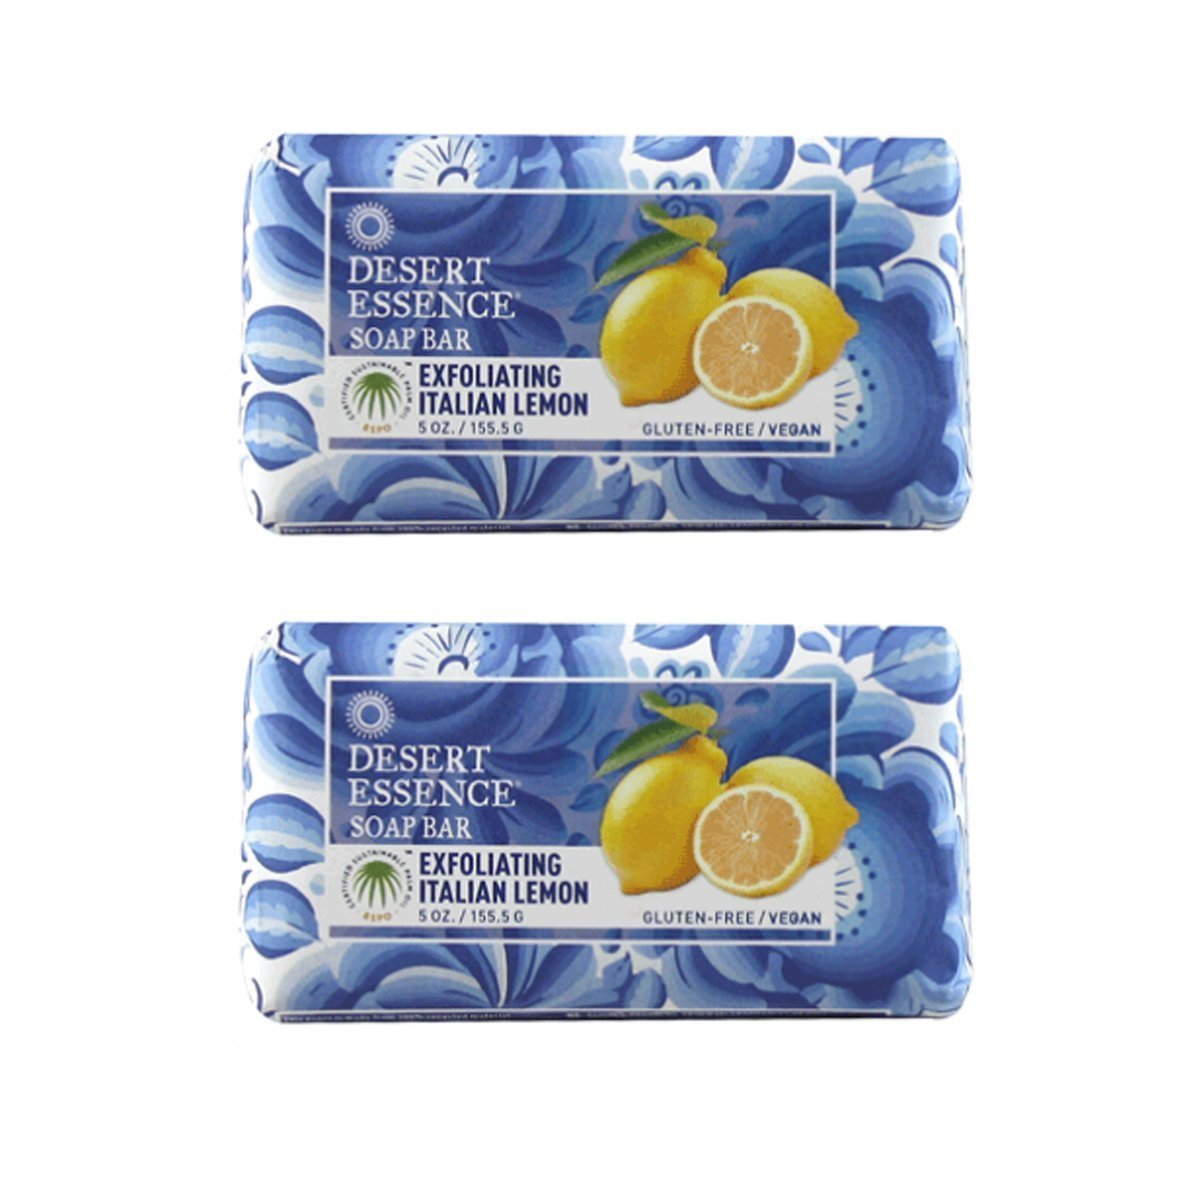 Desert Essence Exfoliating Lemon Soap Bar, Gluten Free/Vegan, 5 oz. (Pack of 2)